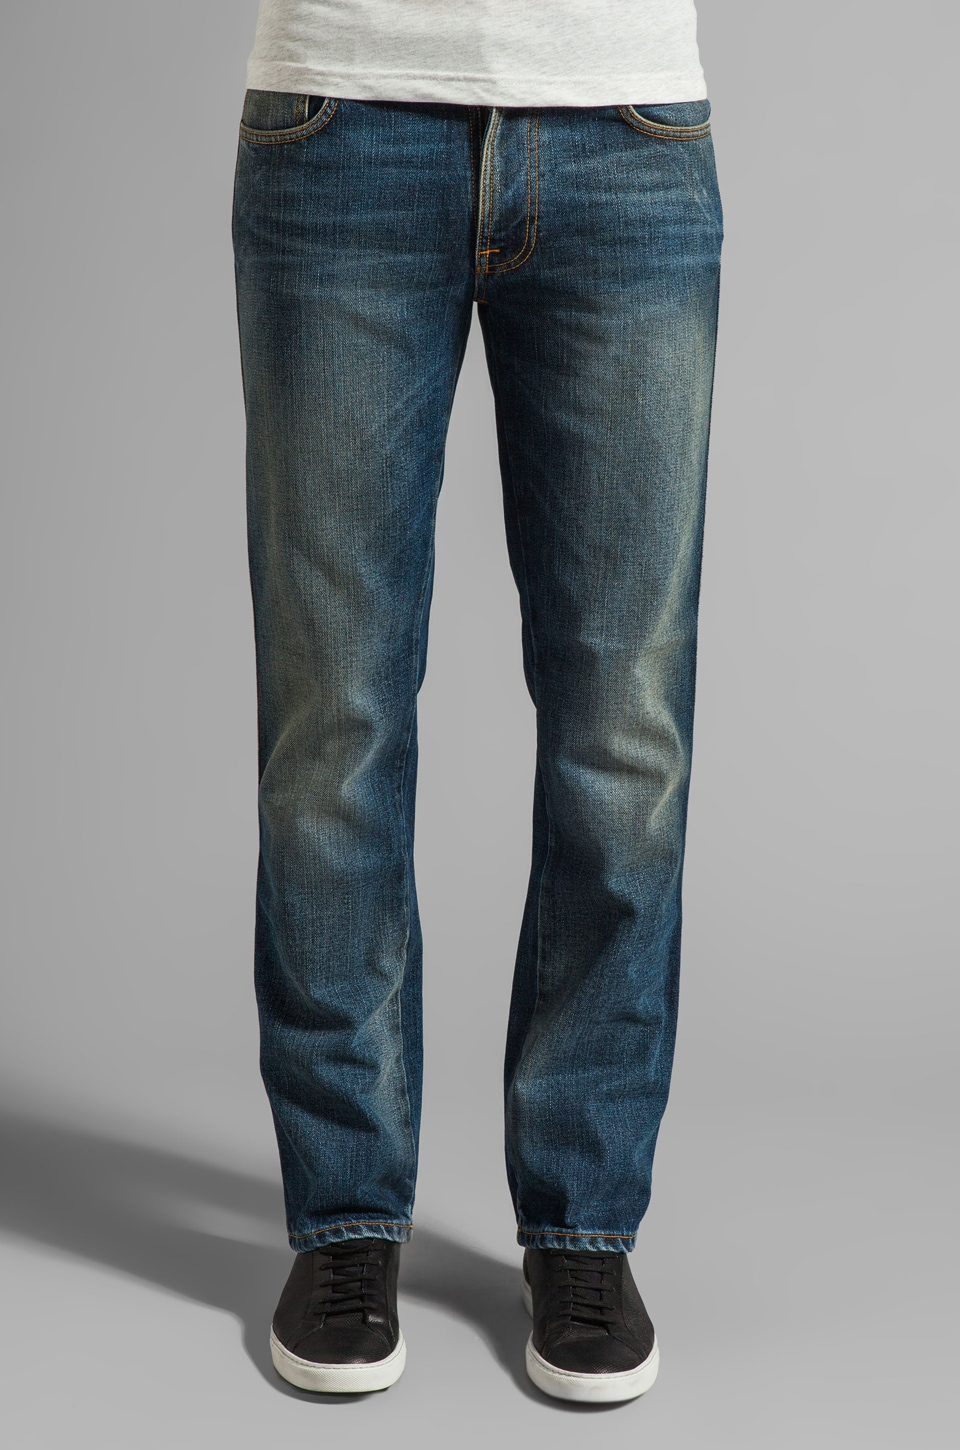 Nudie Jeans Slim Jim in Org. Indigo Mood